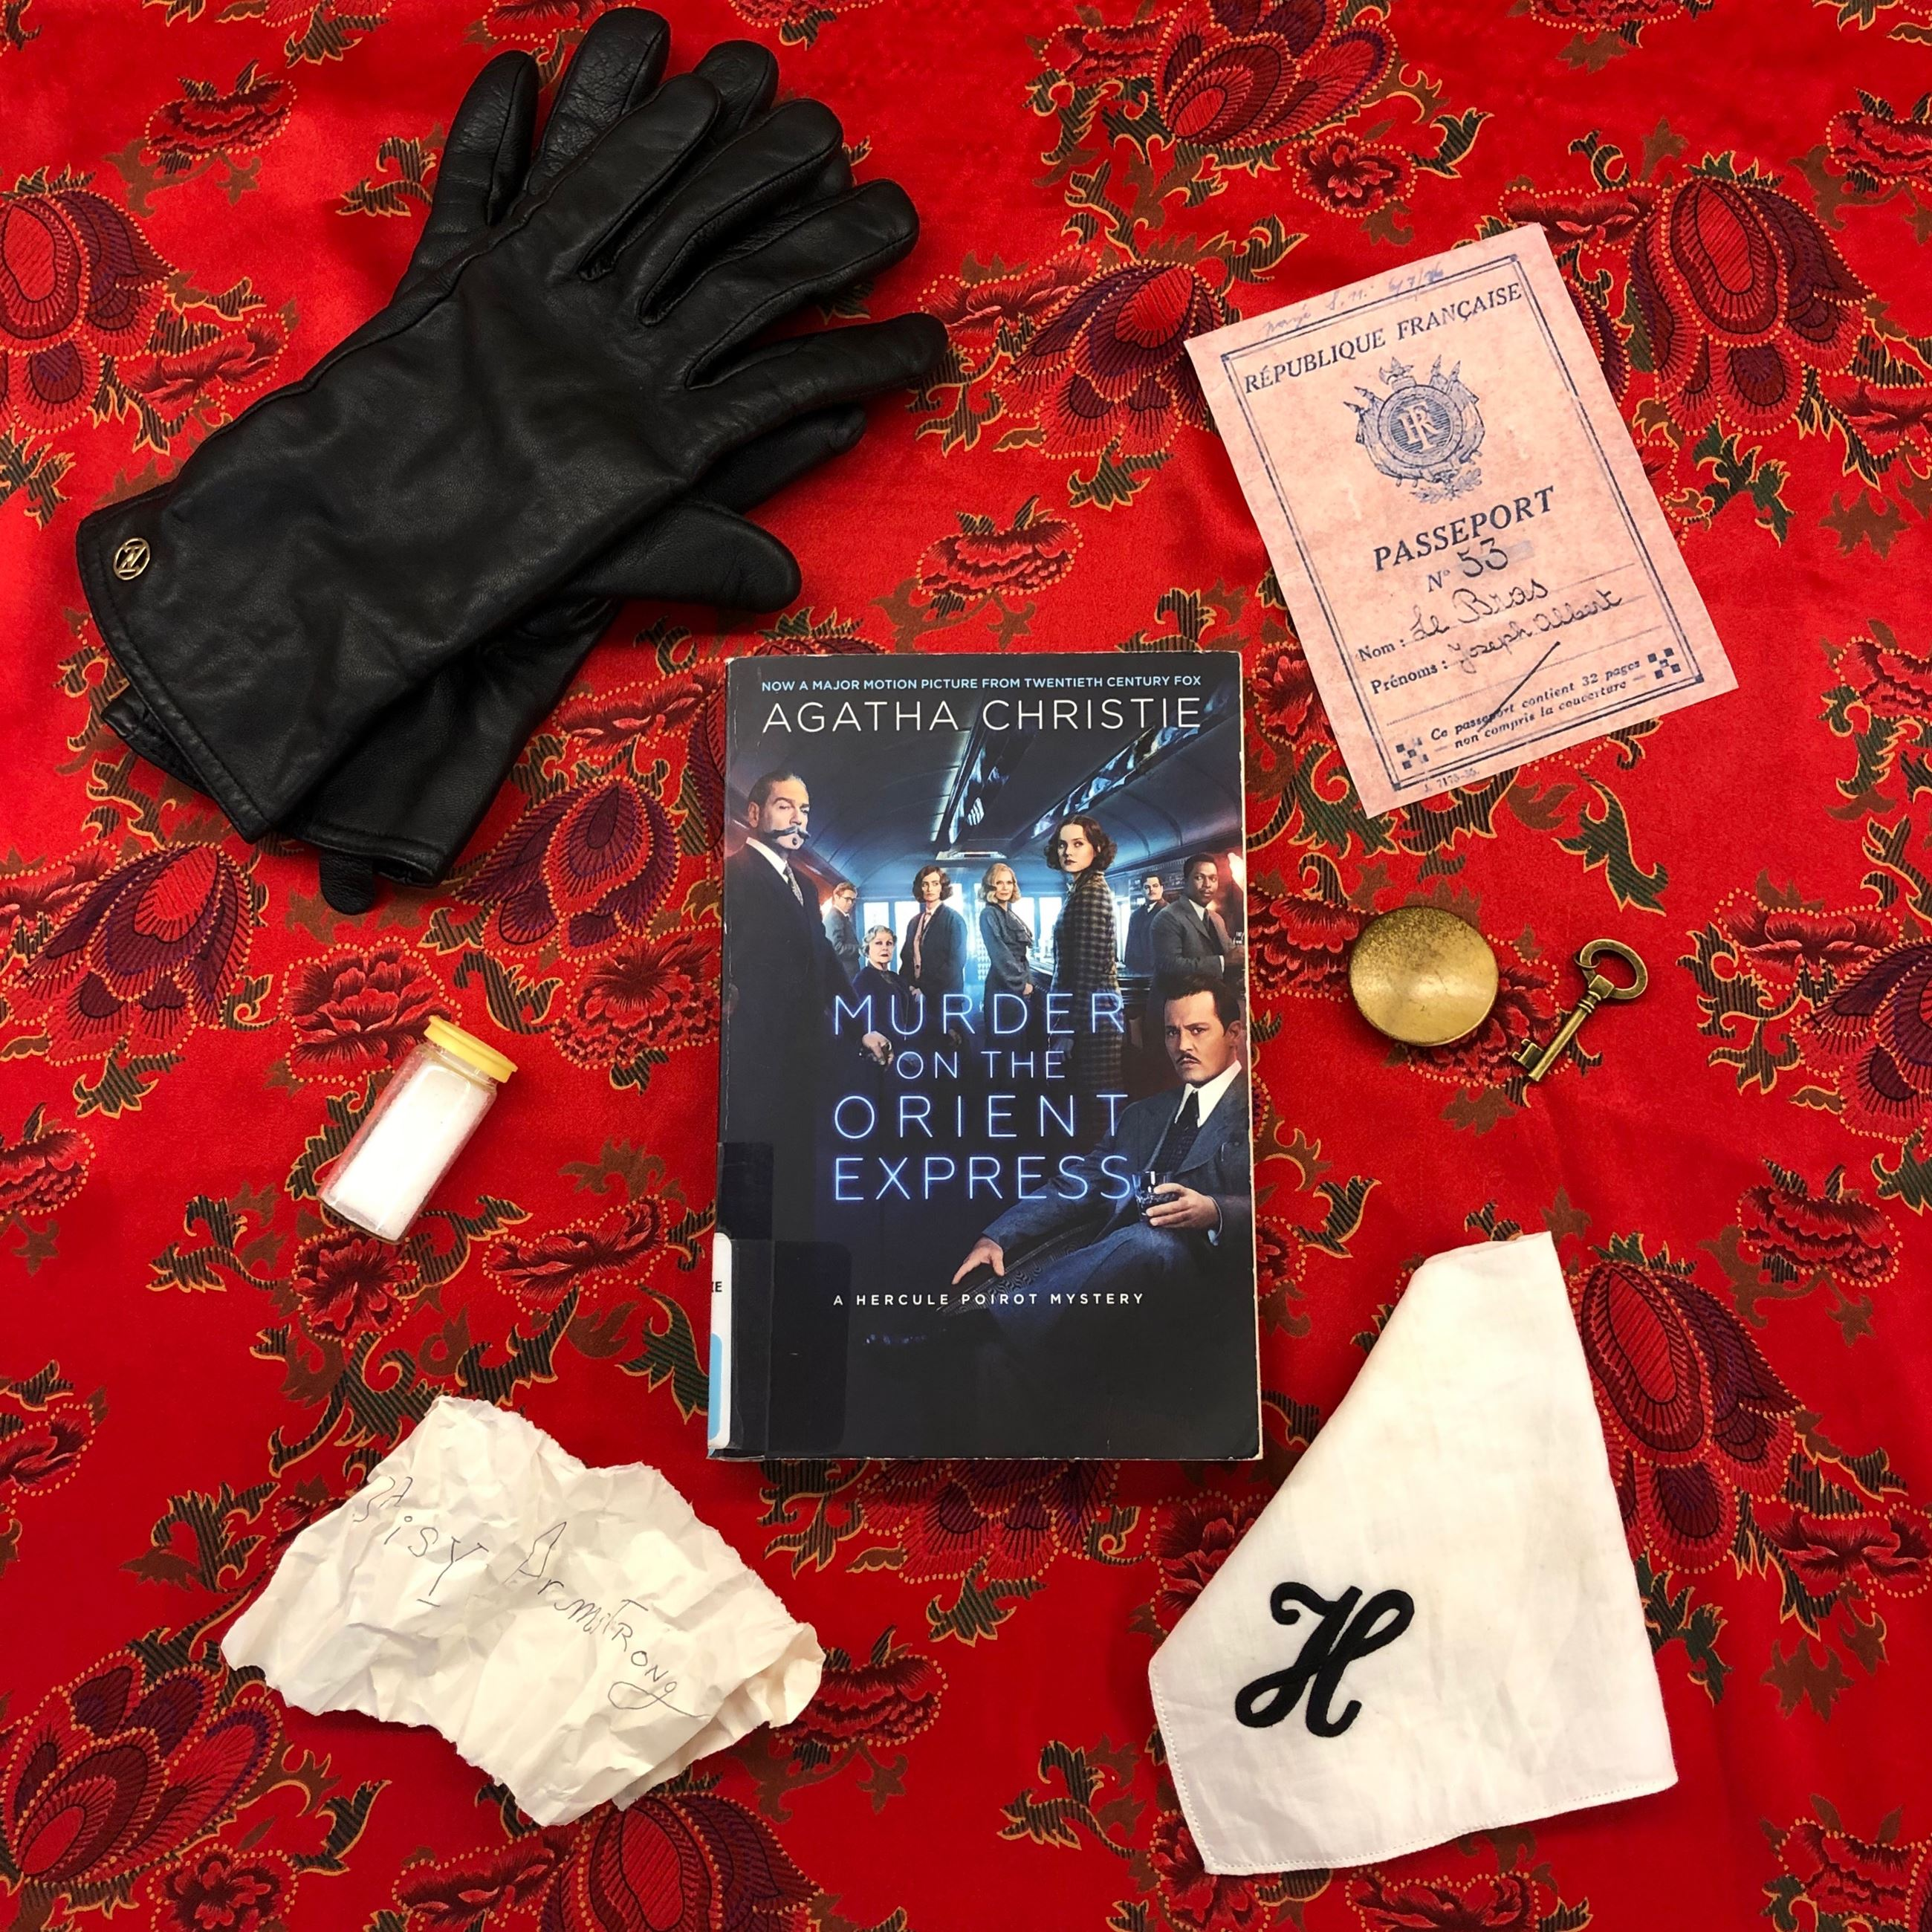 Book (Murder on the Orient Express by Agatha Christie) and gloves, passport, key, watch, in image